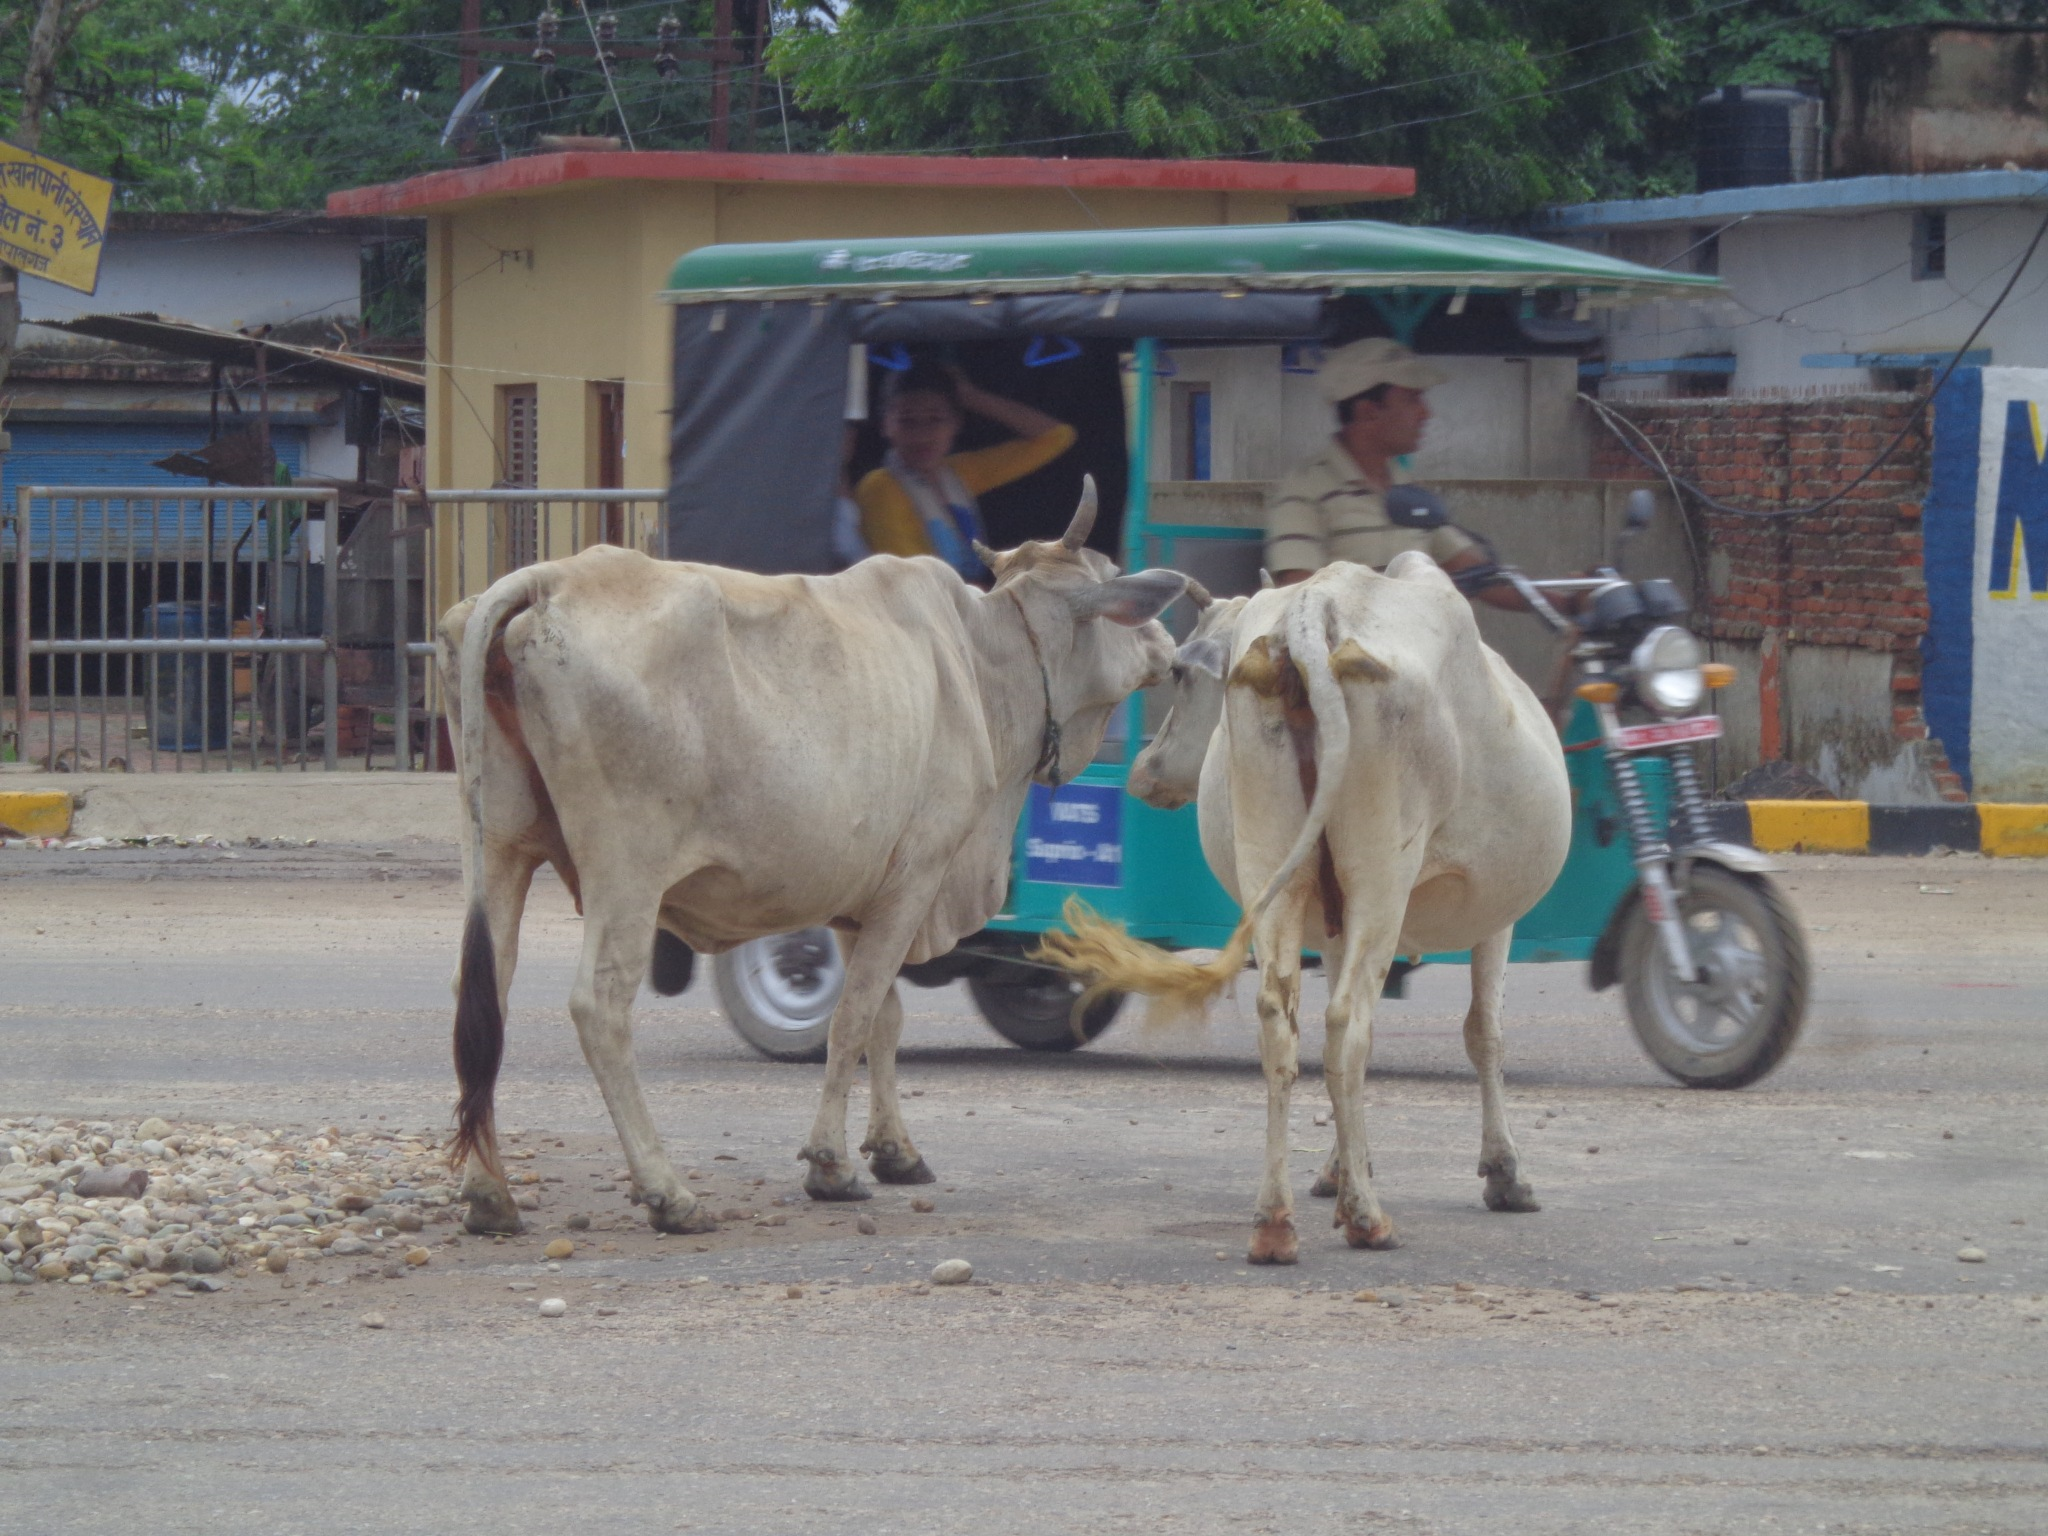 even cow are also a vehicles in ancient time  by mohammad nihal akhtar